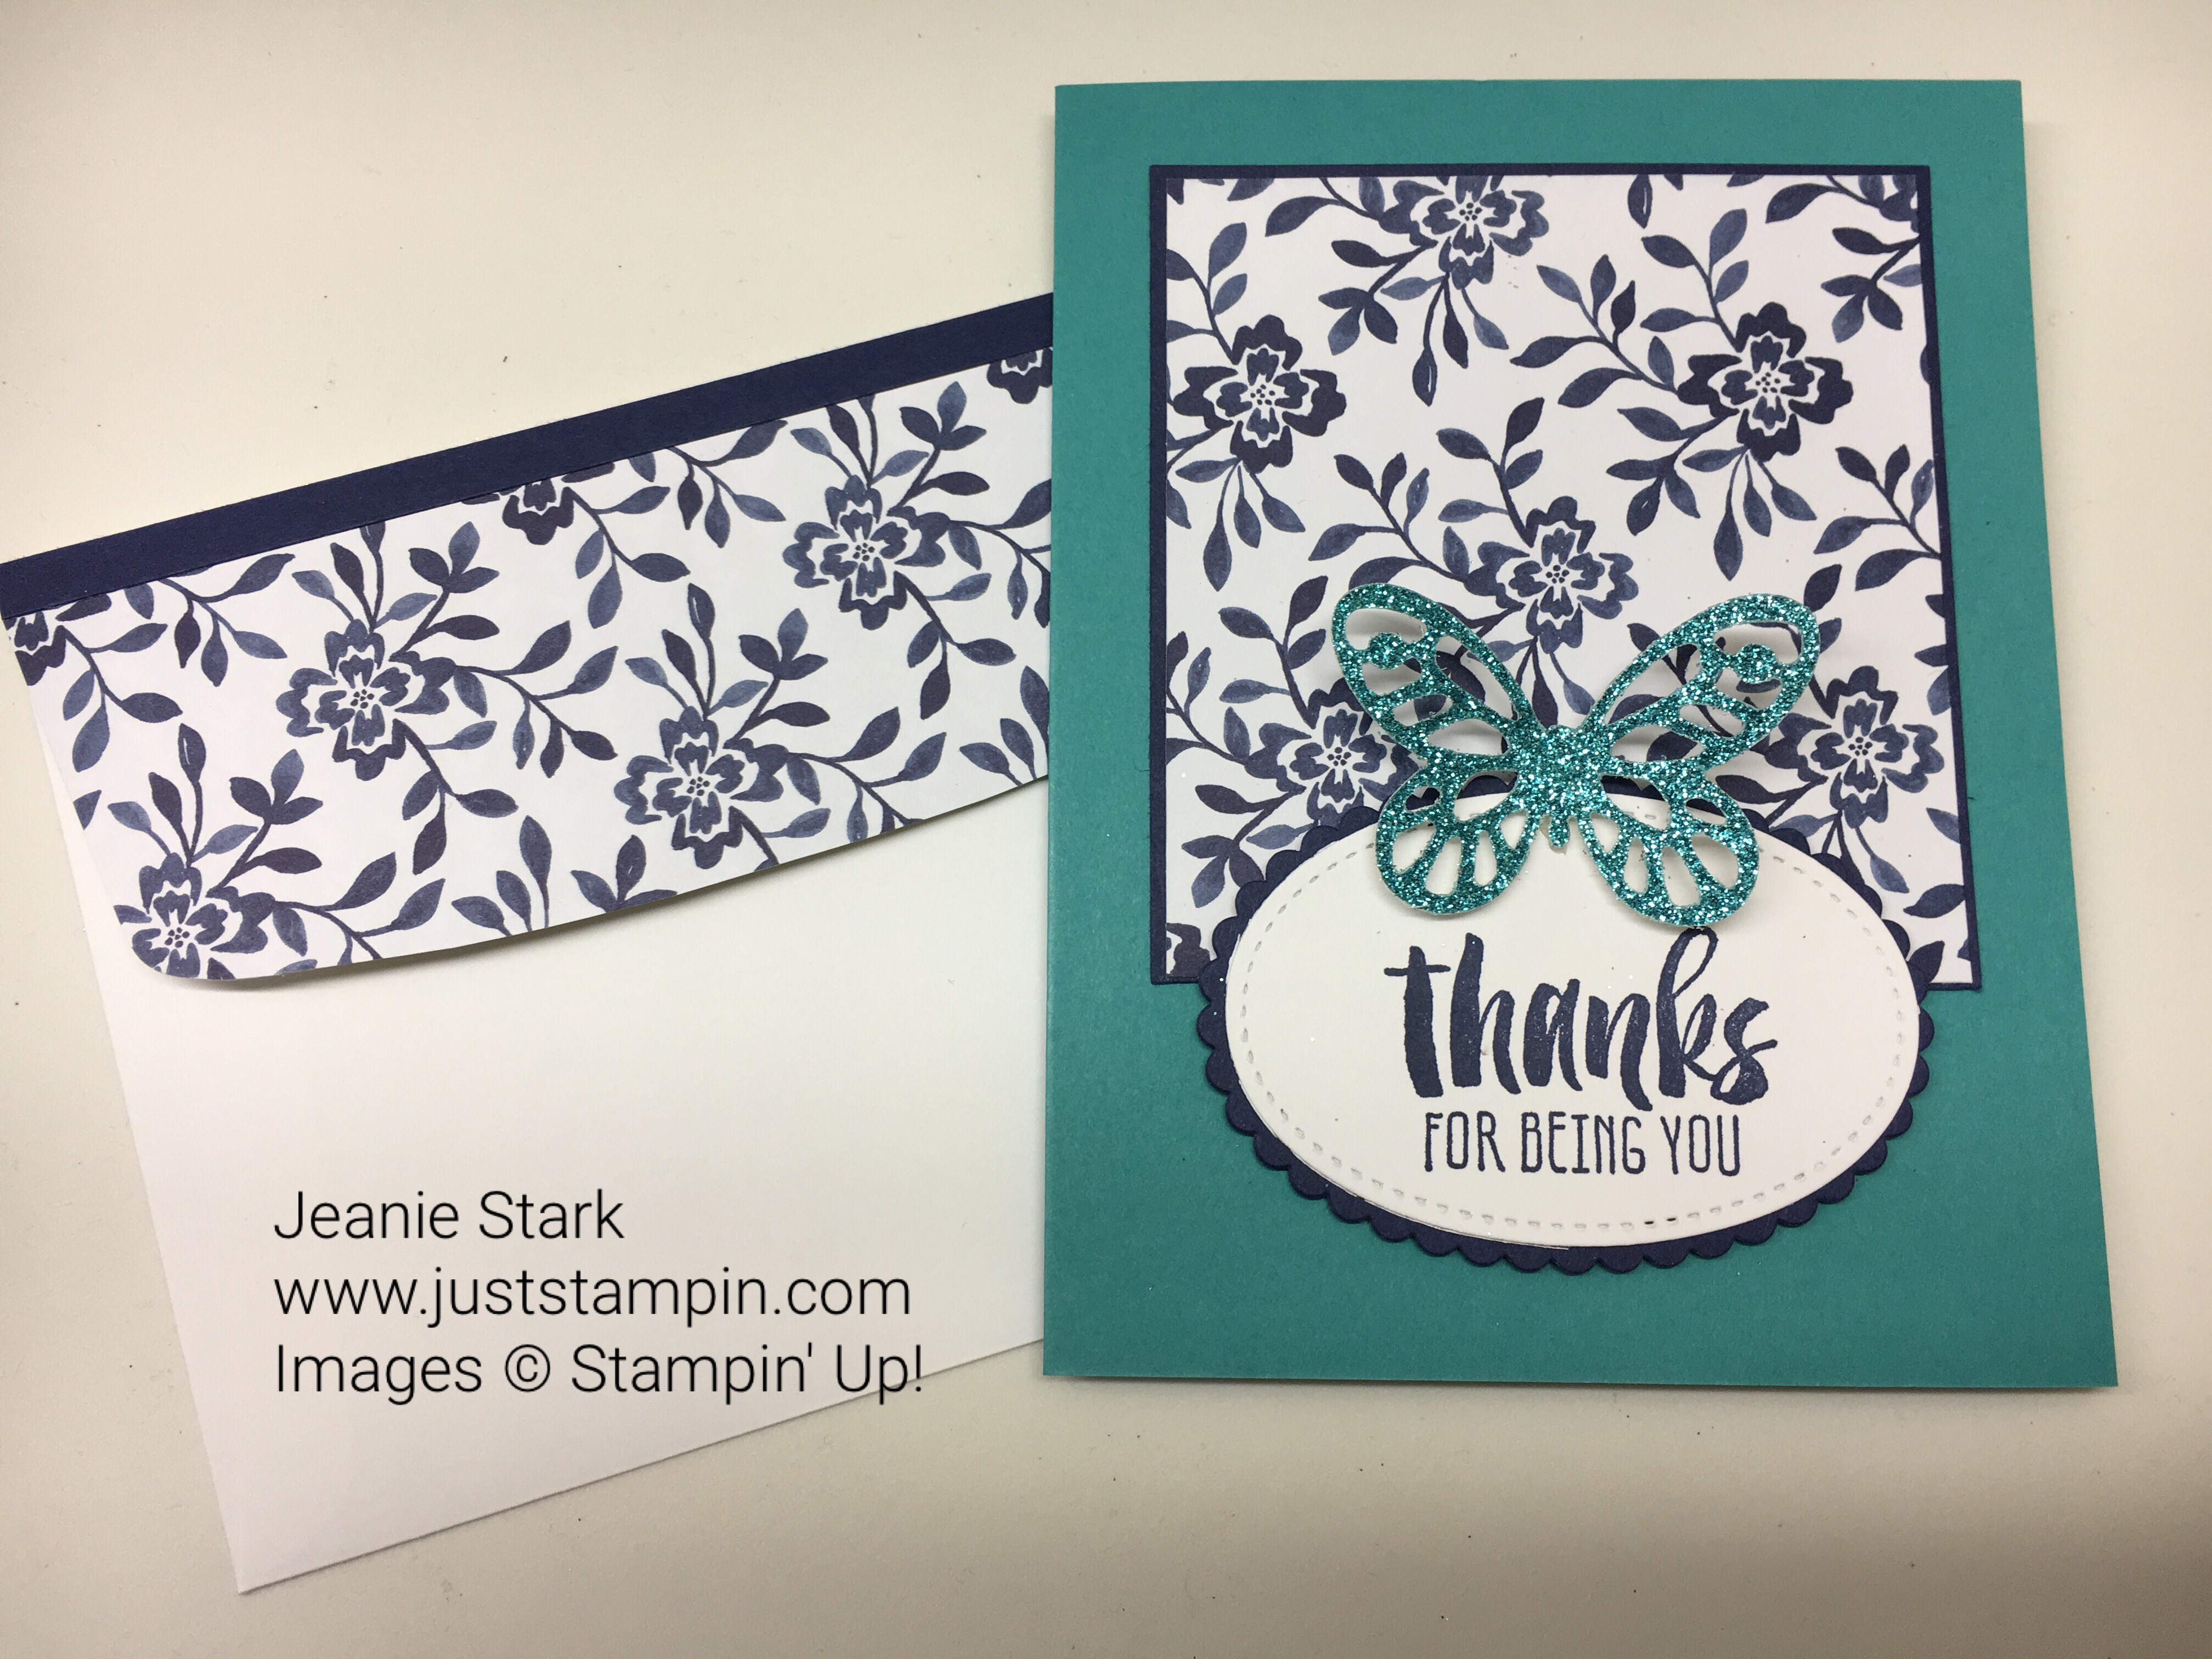 Stampin Up Clean & Simple Suite Sayings Bold Butterfly thank you card idea - Jeanie Stark StampinUp